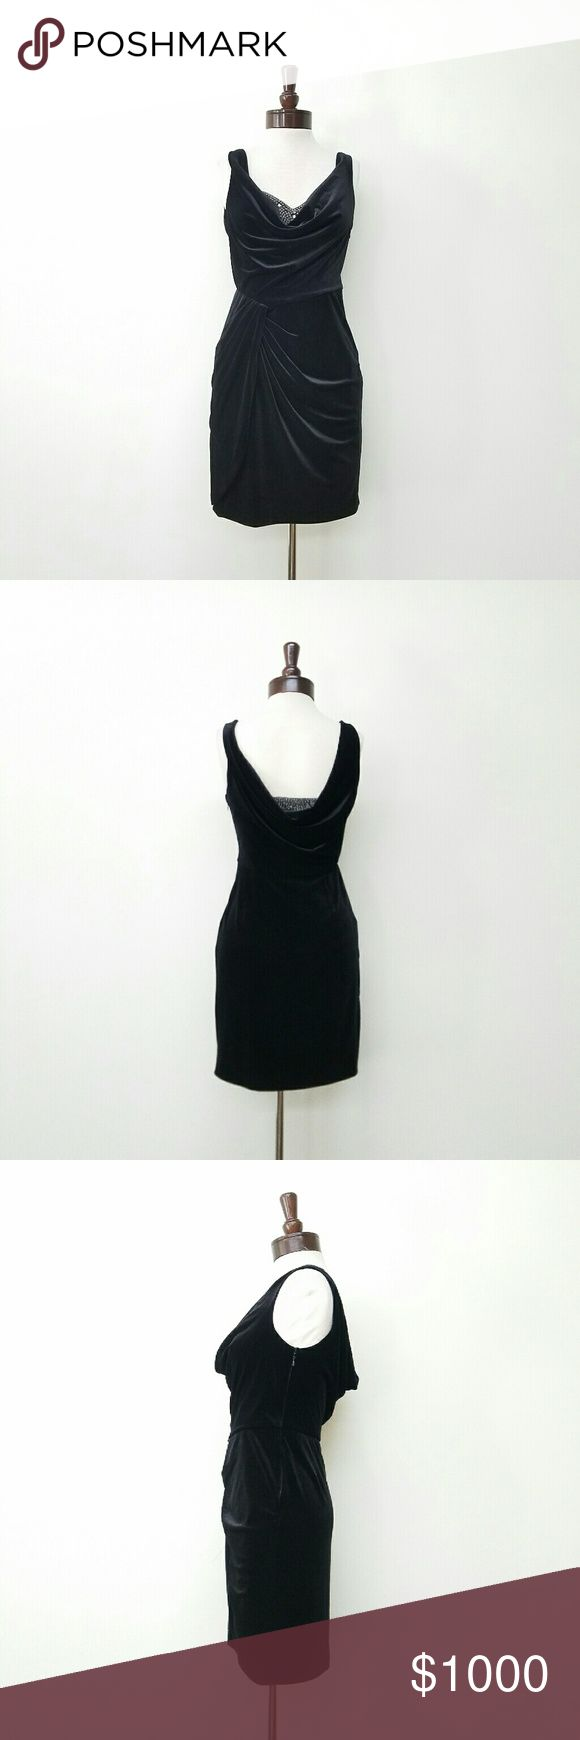 Aidan Mattox Velvet Little Black Dress Beaded Insert. Brand new. Never used. Tags still attached Aidan Mattox Dresses